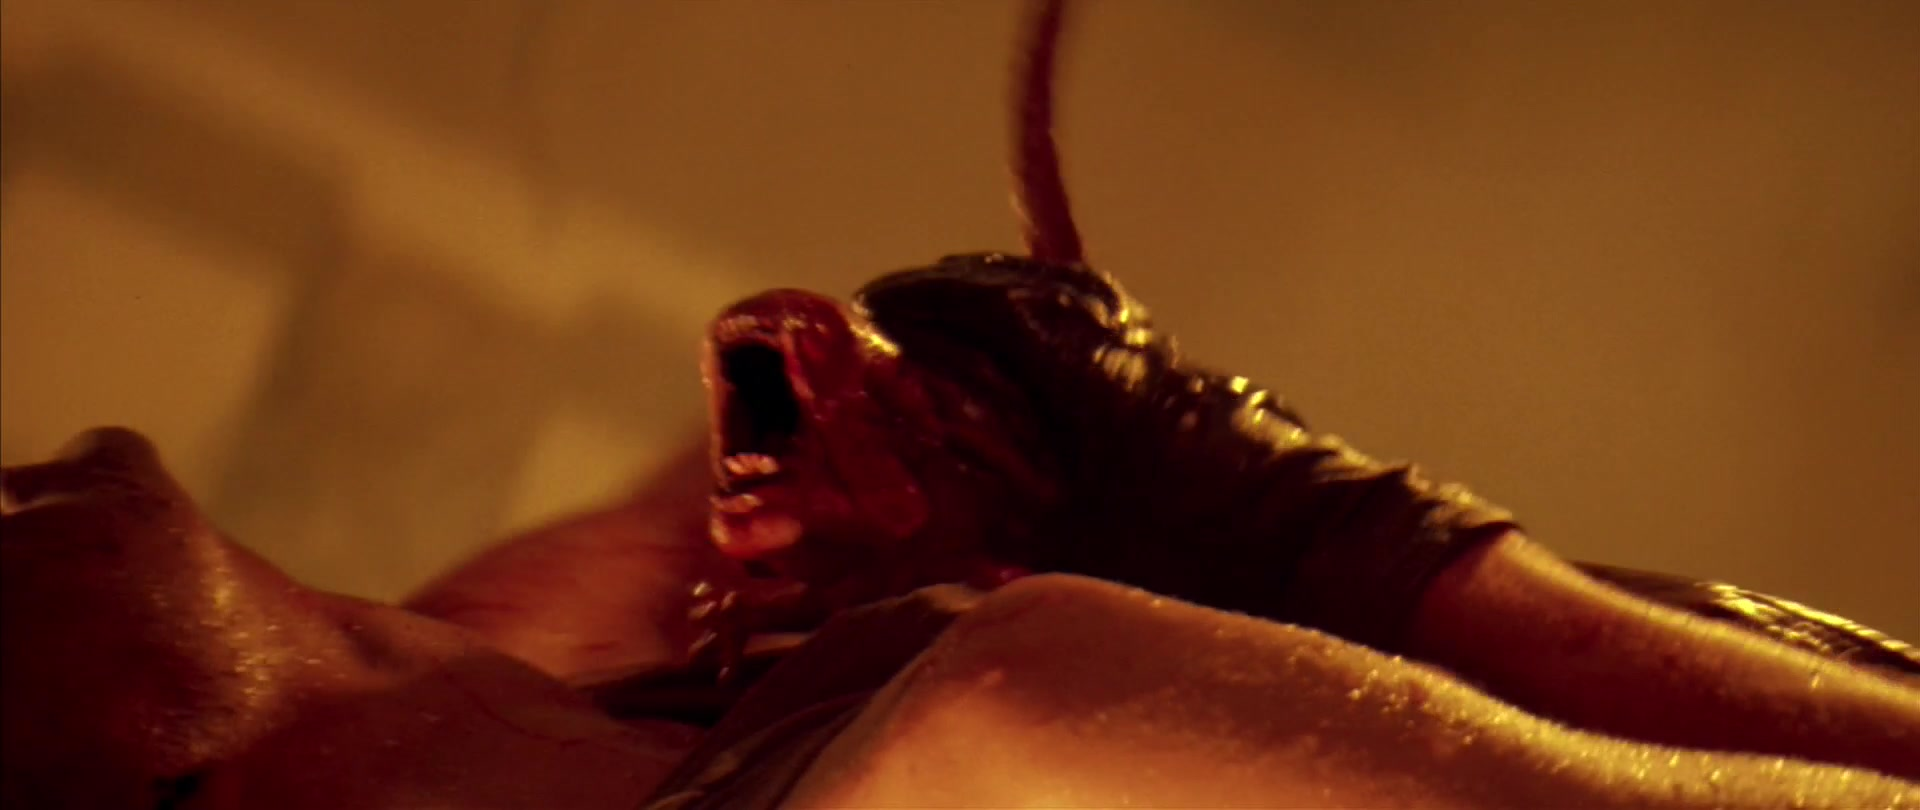 File:Alien-3-chestburster-birth-death 510.jpg